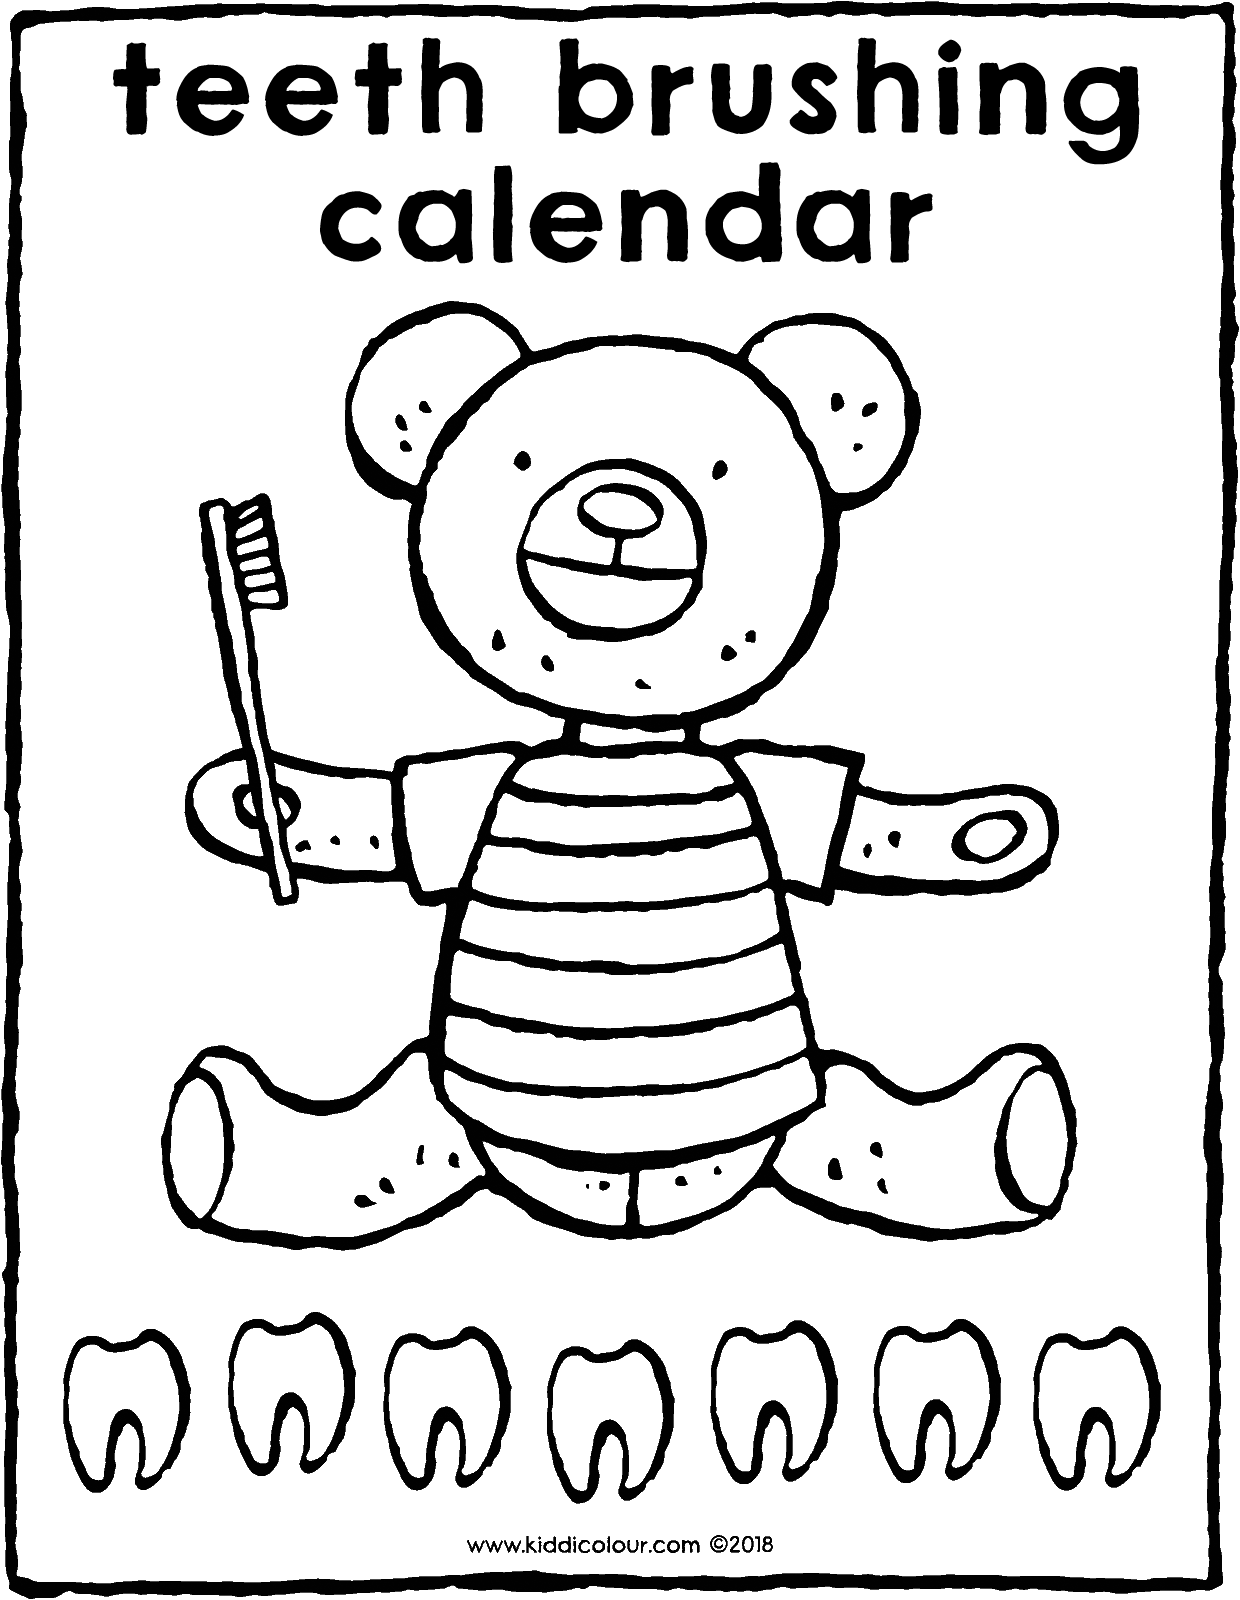 teeth brushing calendar colouring page drawing picture 01V